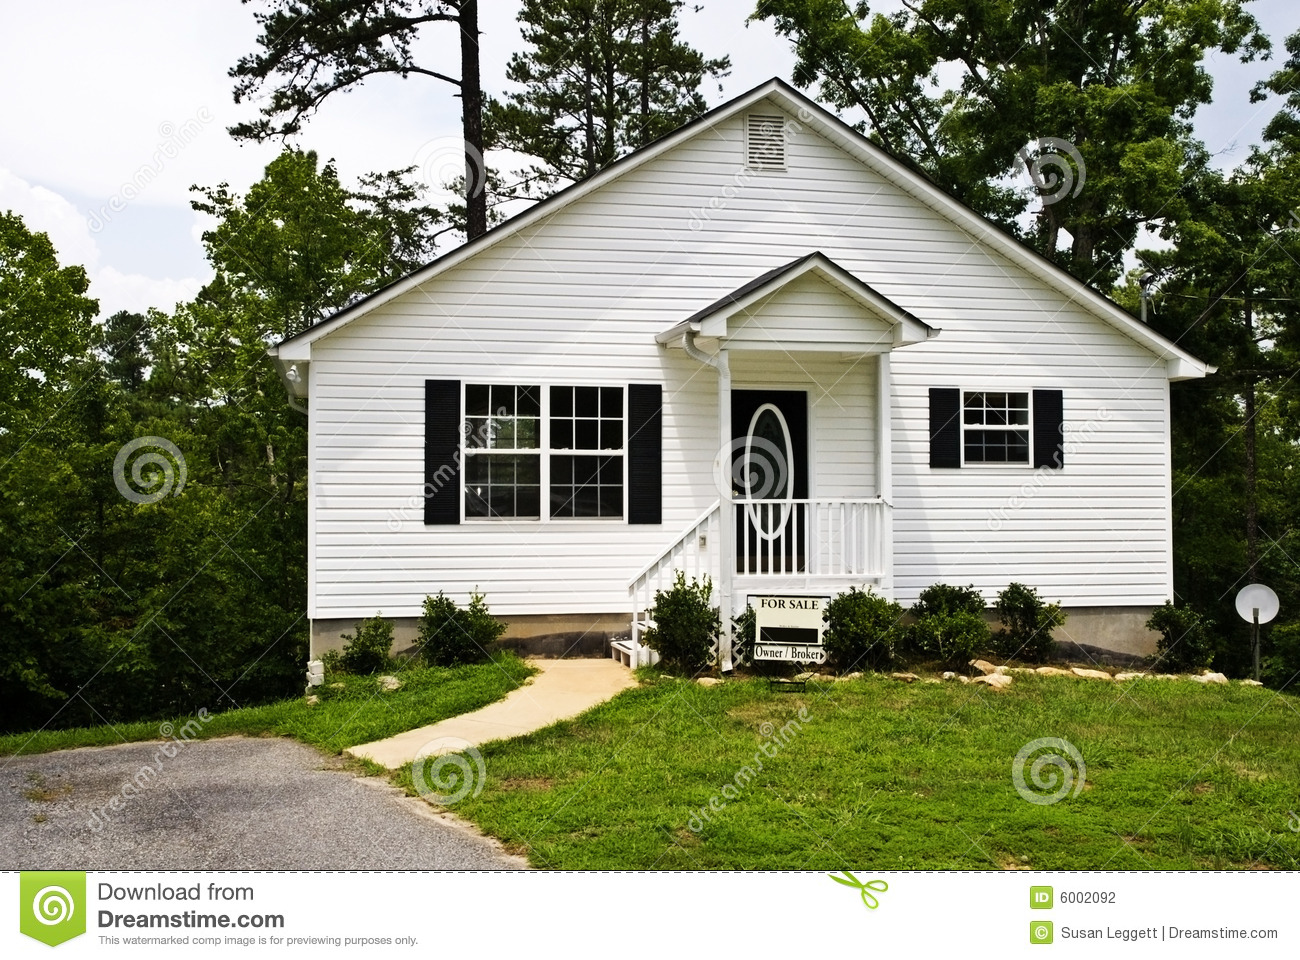 Prime Small White House For Sale Stock Photography Image 6002092 Largest Home Design Picture Inspirations Pitcheantrous